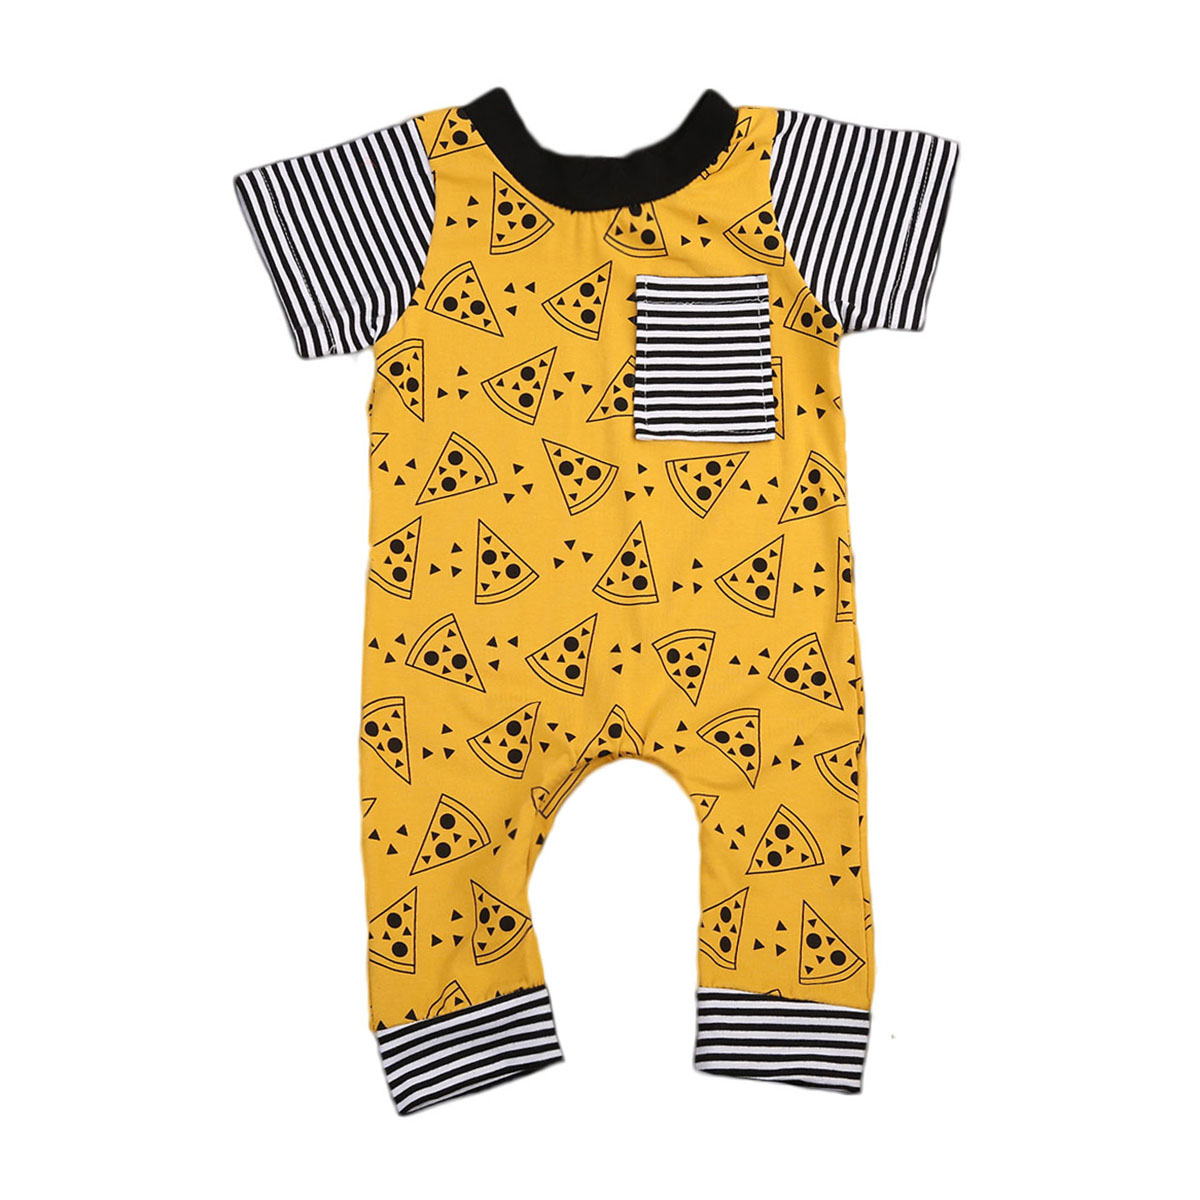 Melting Microphones Music Note Funny Infant Romper Jumpsuit Baby Layette Bodysuit Kids One-Piece